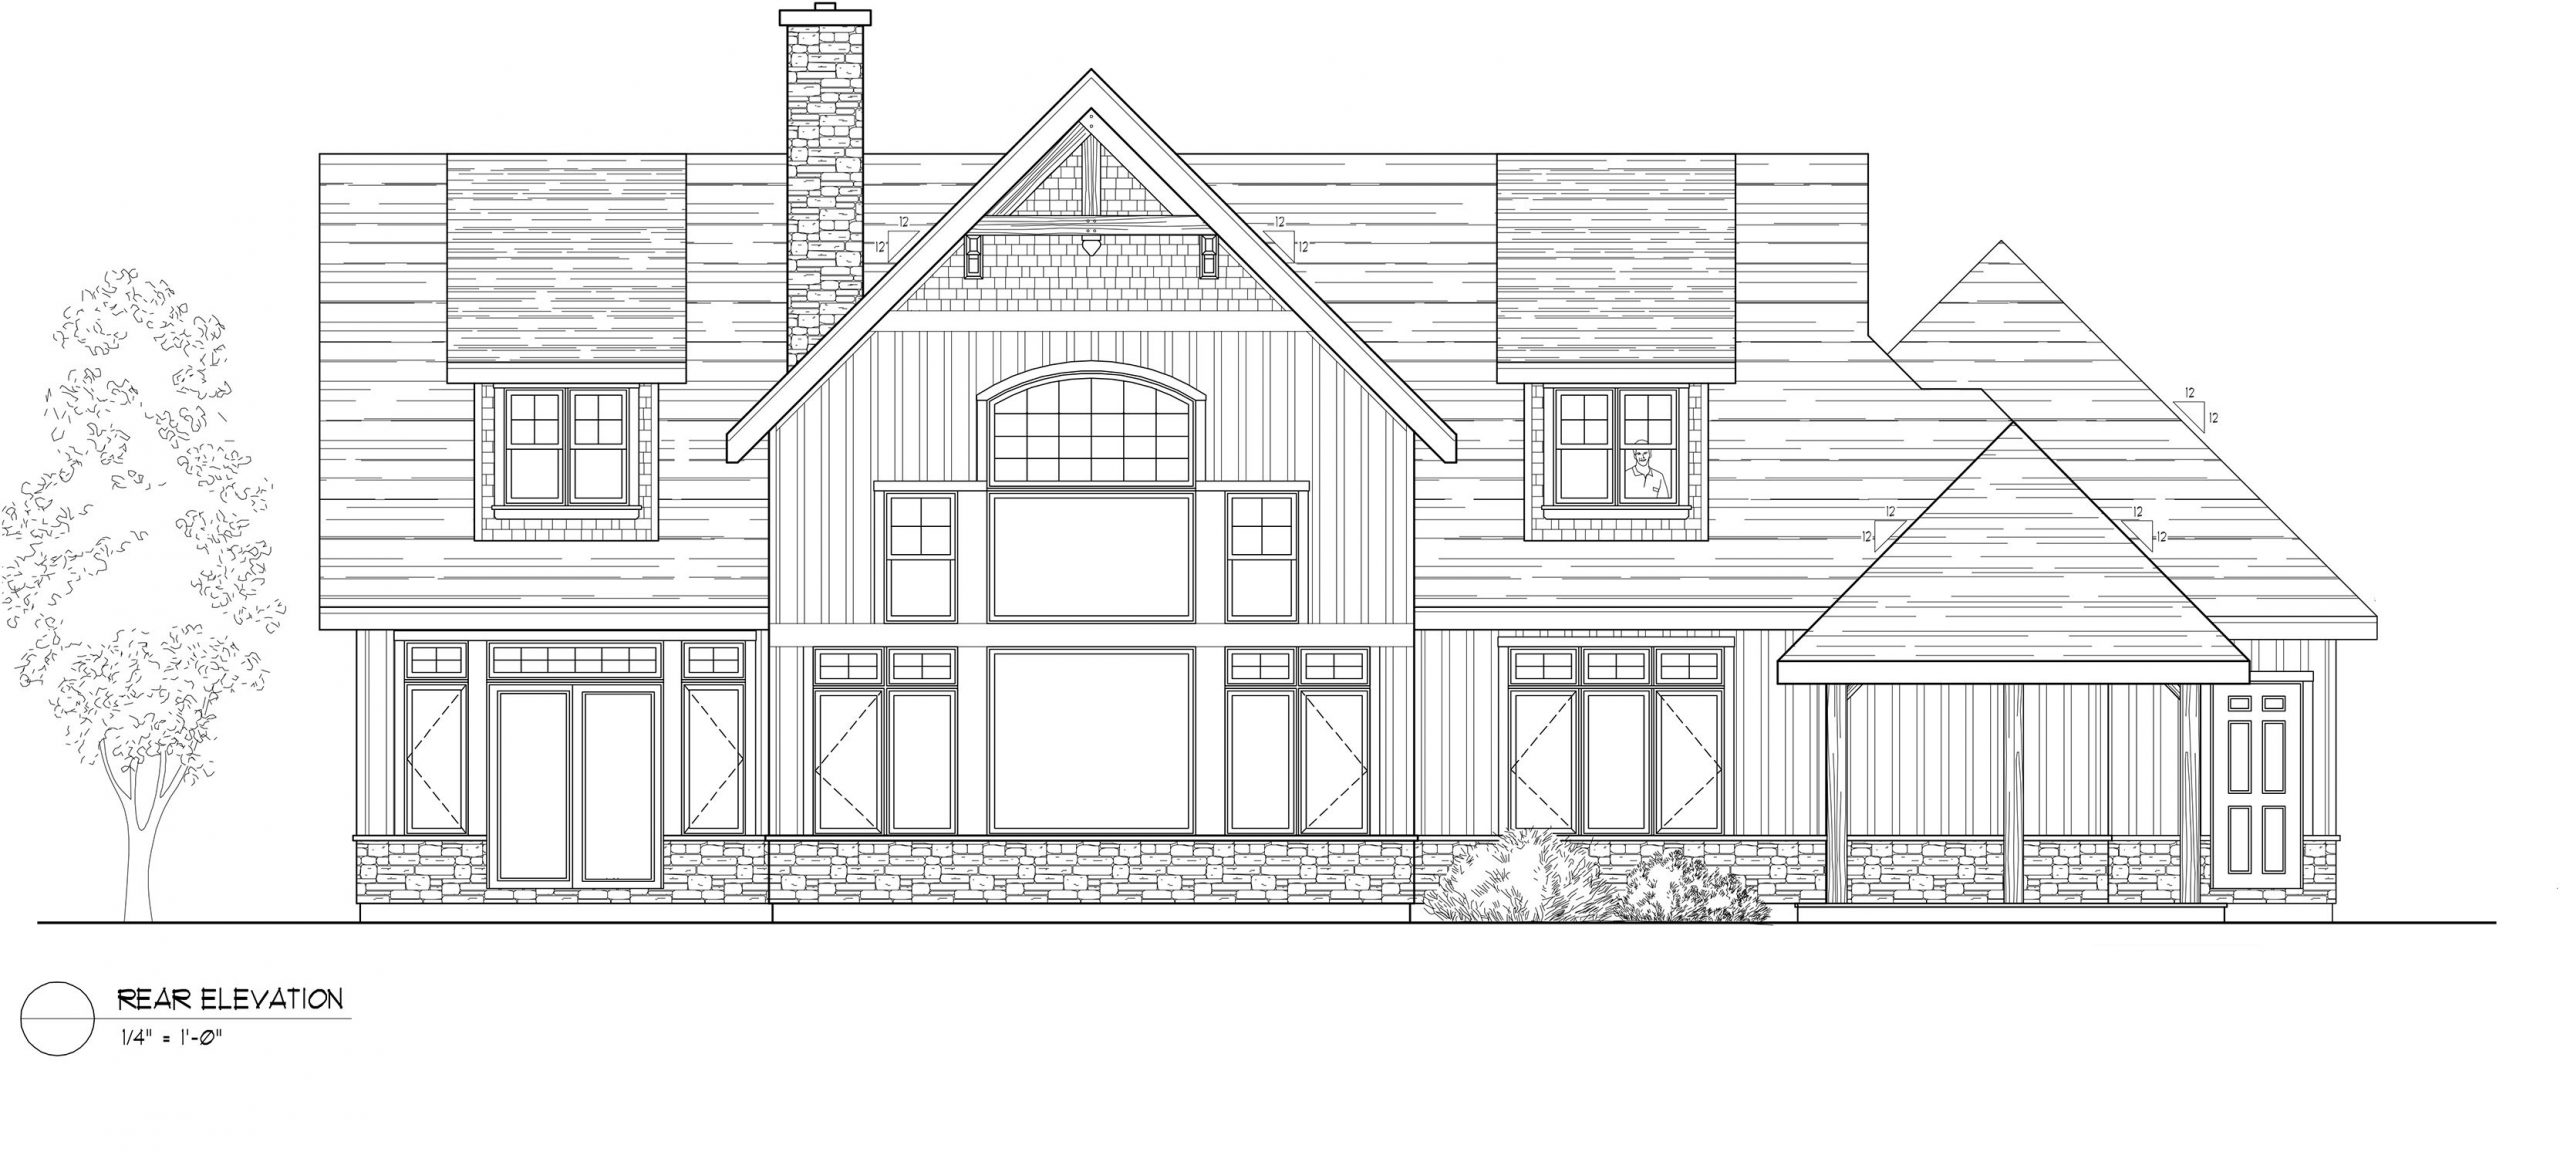 Normerica Timber Frames, House Plan, The Dufferin 2822, Rear Elevation